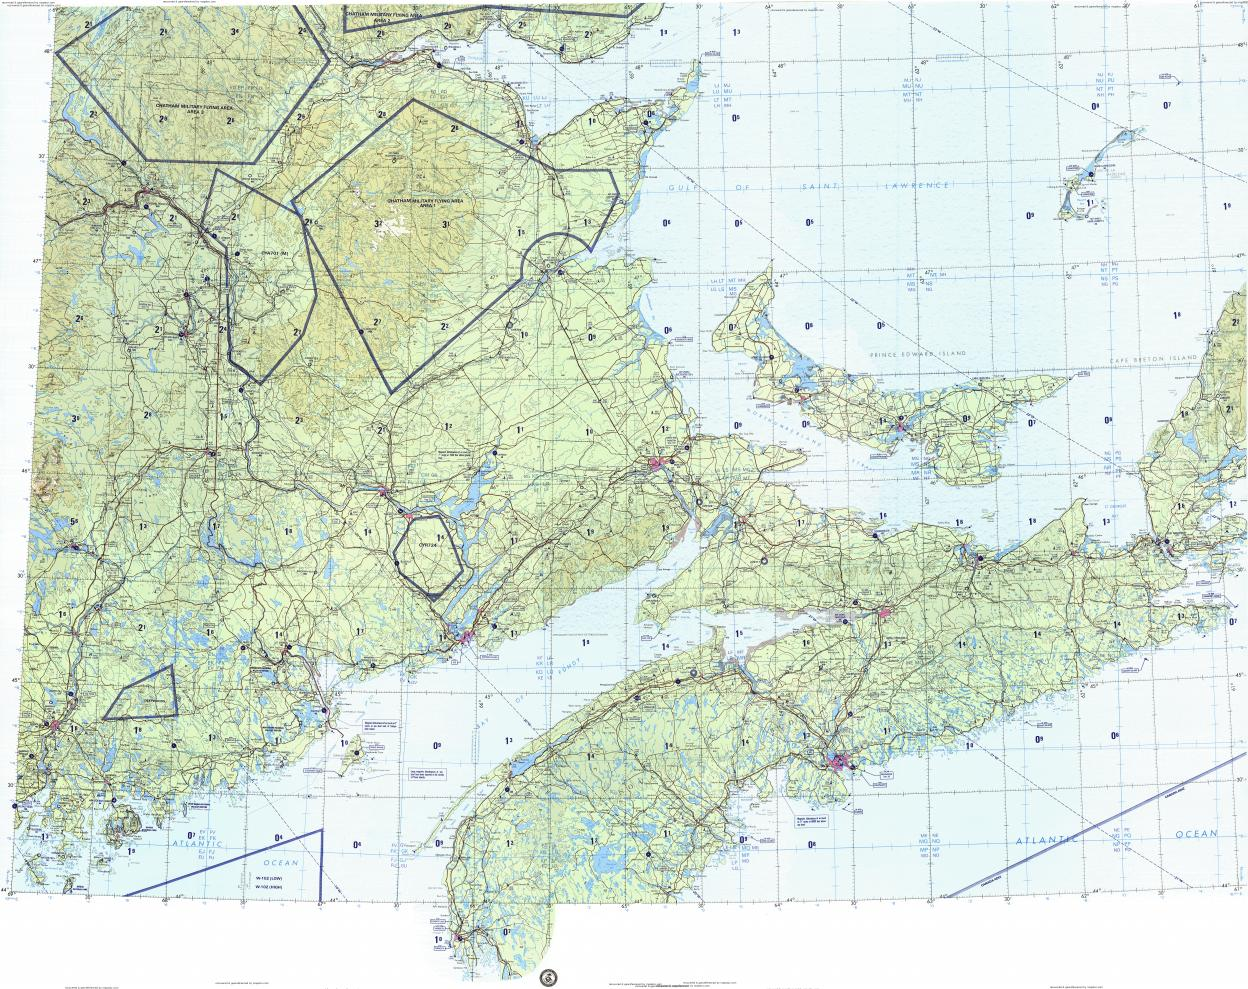 Download topographic map in area of Halifax Saint John Fredericton